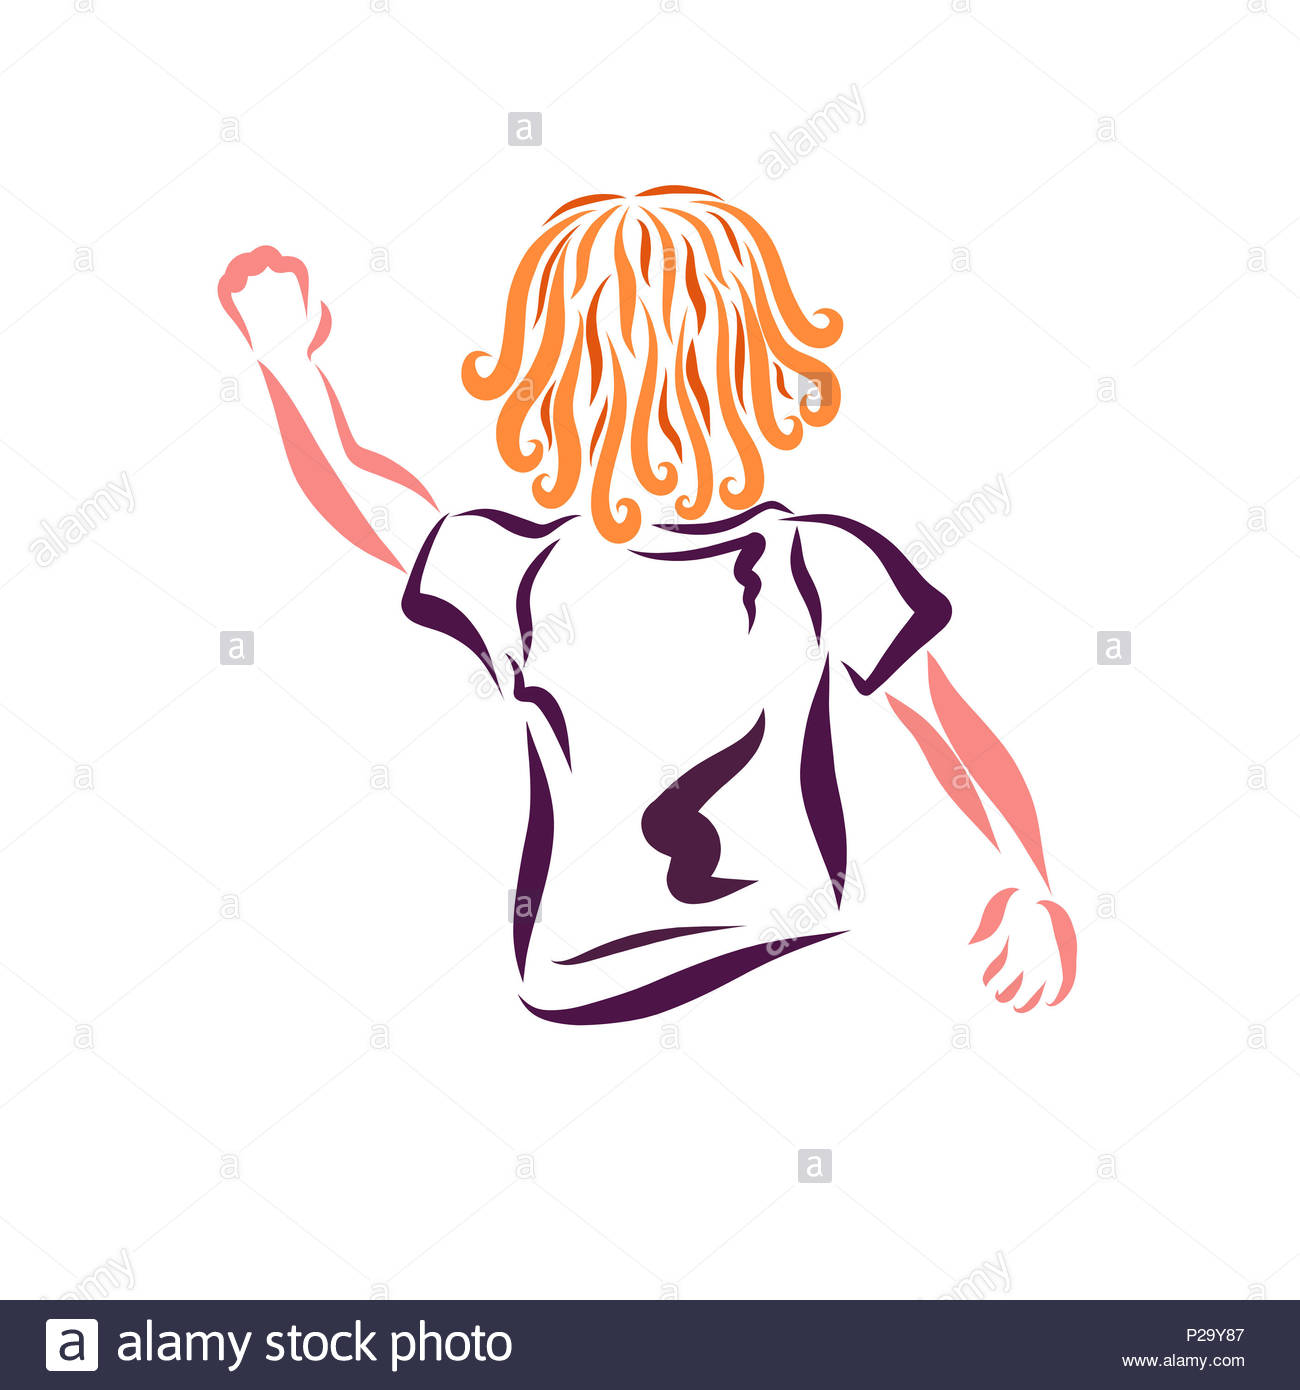 A child waving his hand greeting or saying goodbye stock photo a child waving his hand greeting or saying goodbye m4hsunfo